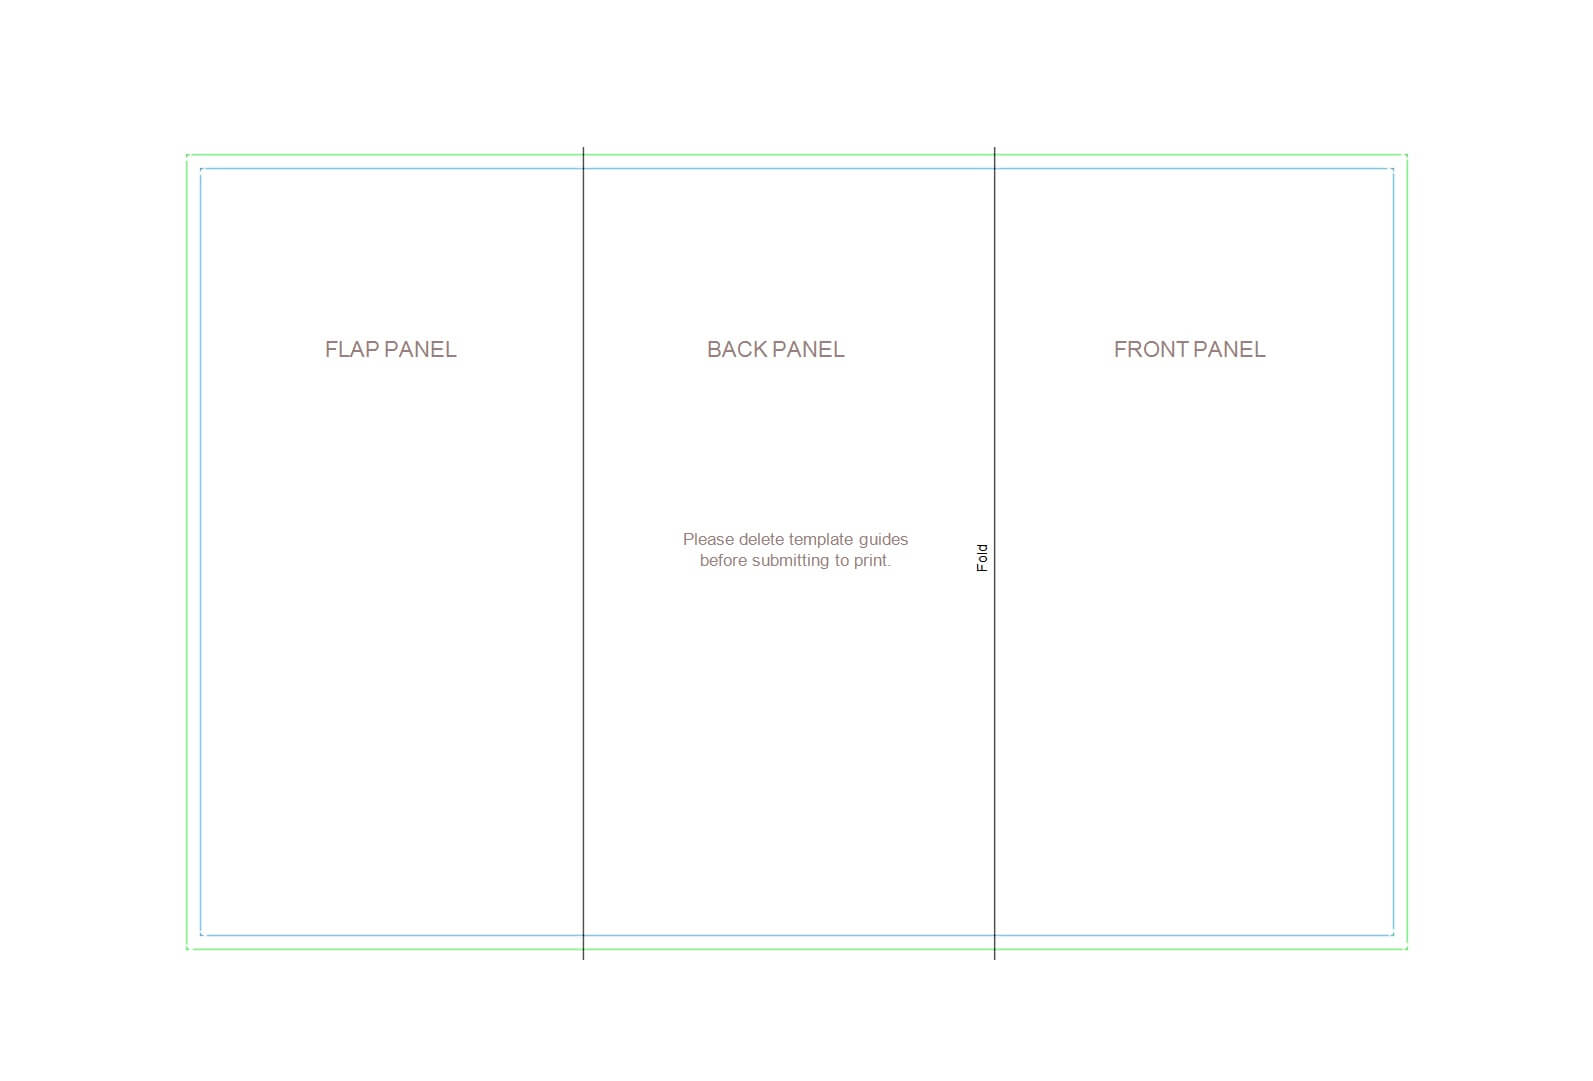 50 Free Pamphlet Templates [Word / Google Docs] ᐅ Template Lab for Brochure Template Google Drive